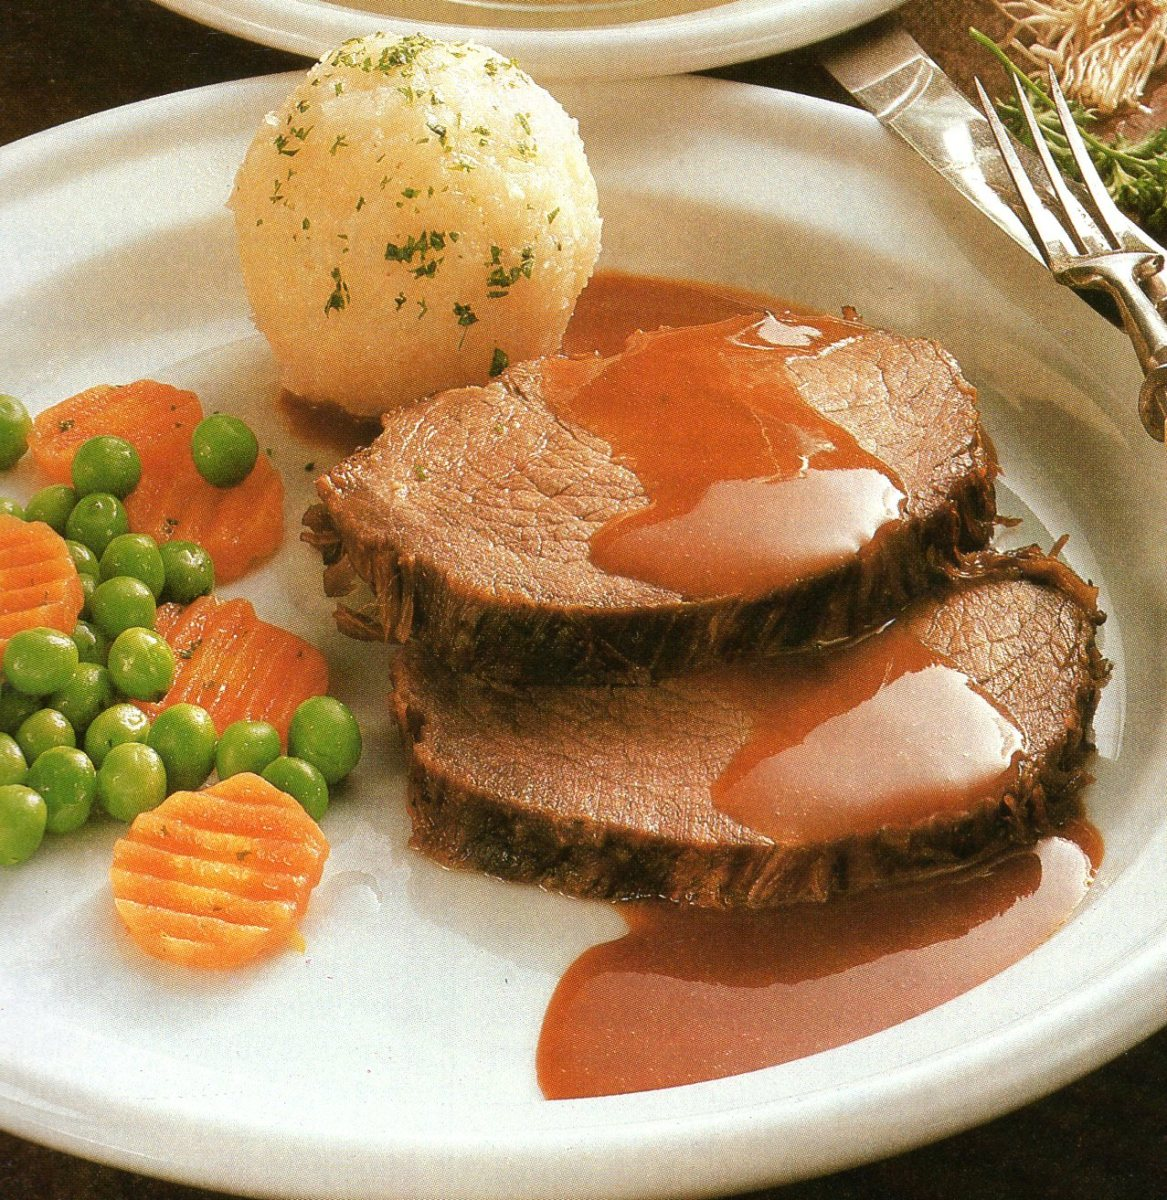 One big Kloss, peas and carrots served with Sauerbraten.